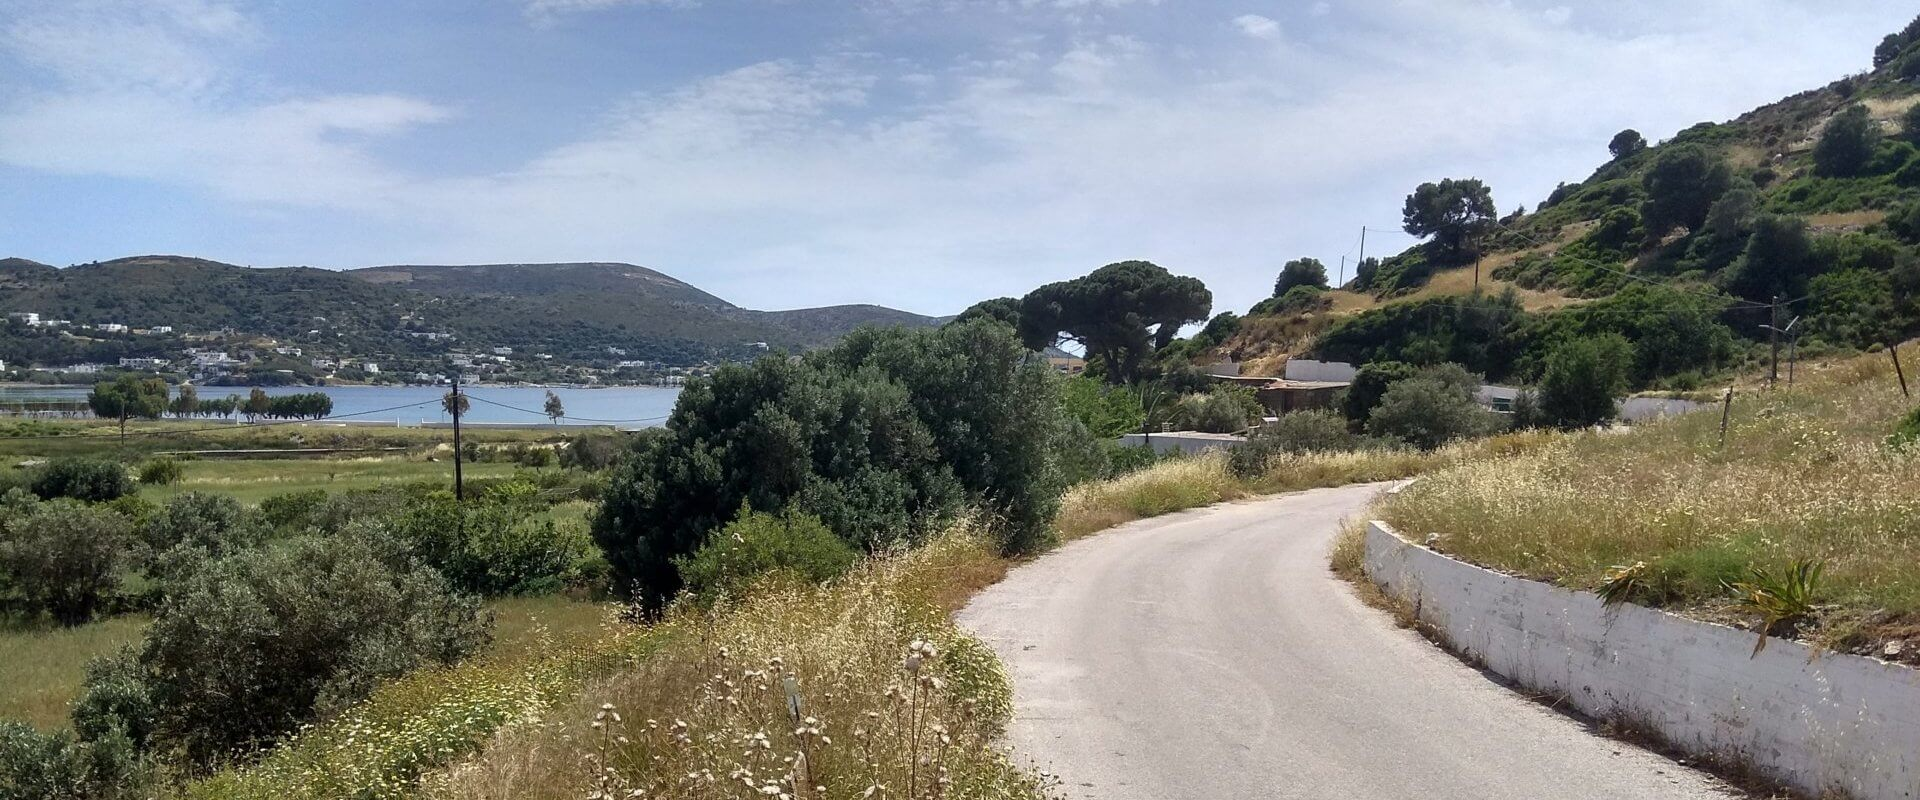 Leros land in Gourna L 627